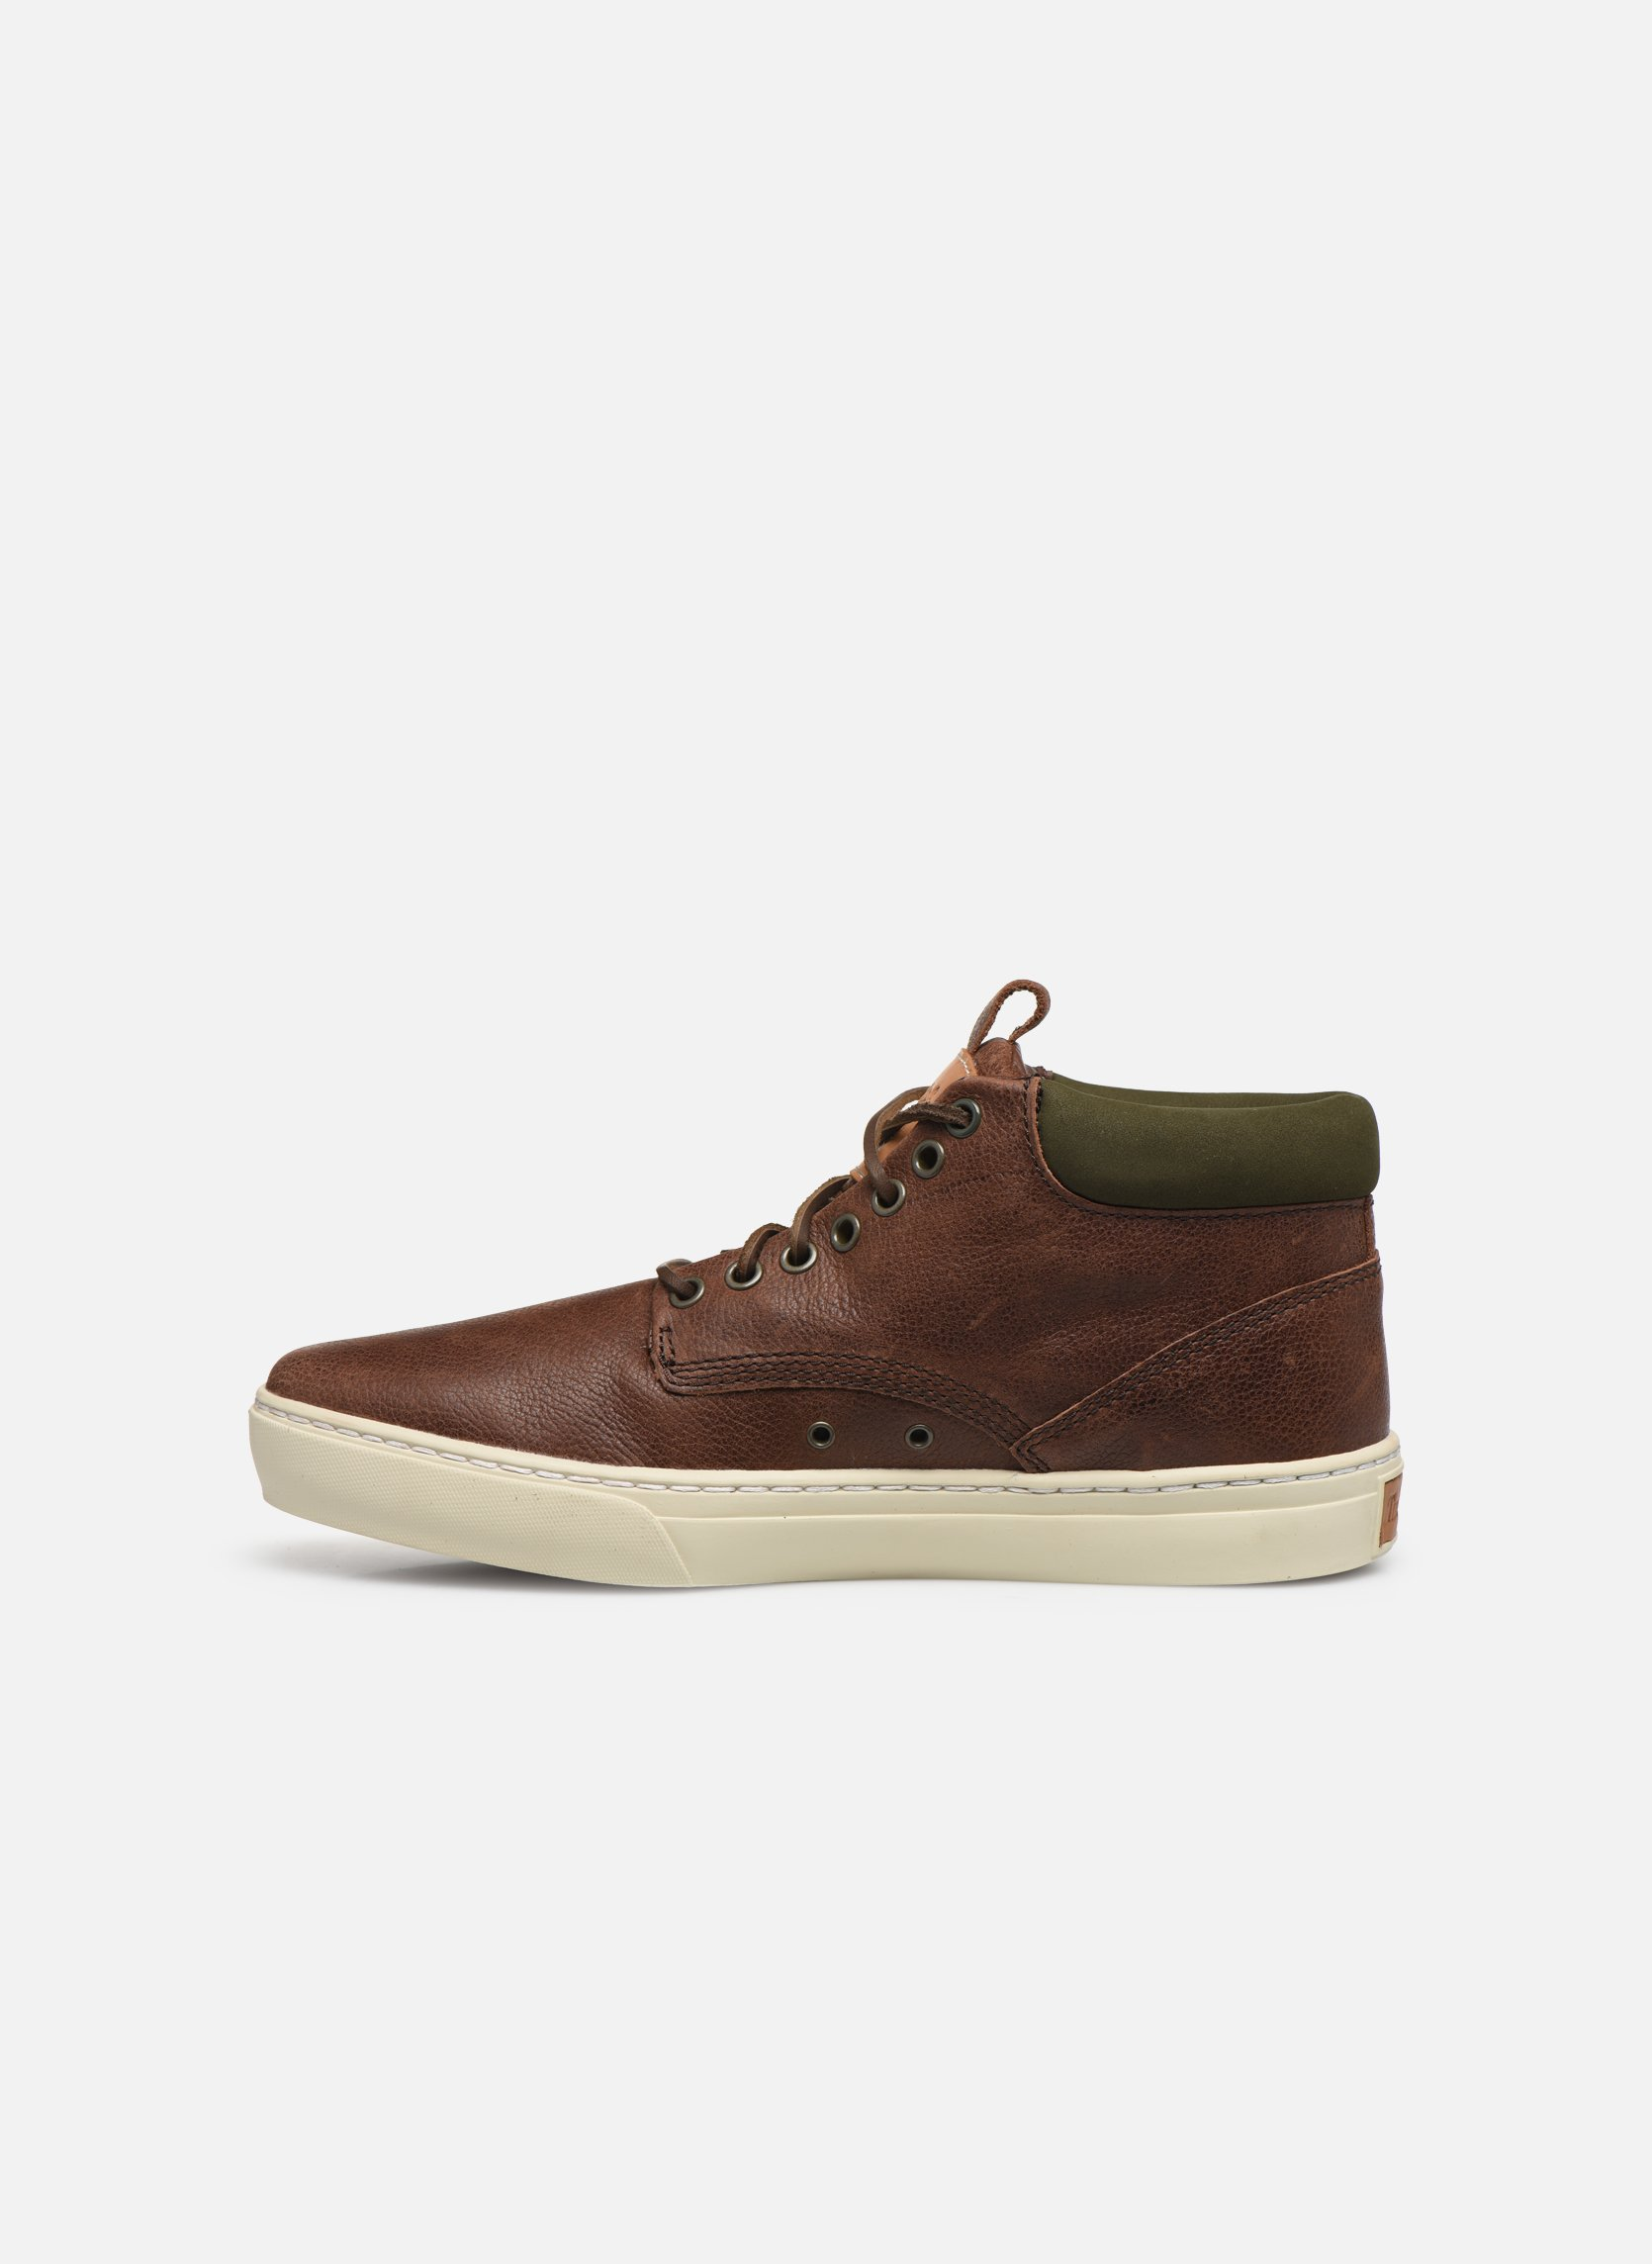 Earthkeepers 2.0 Cupsole Chukka Brown Full-Grain